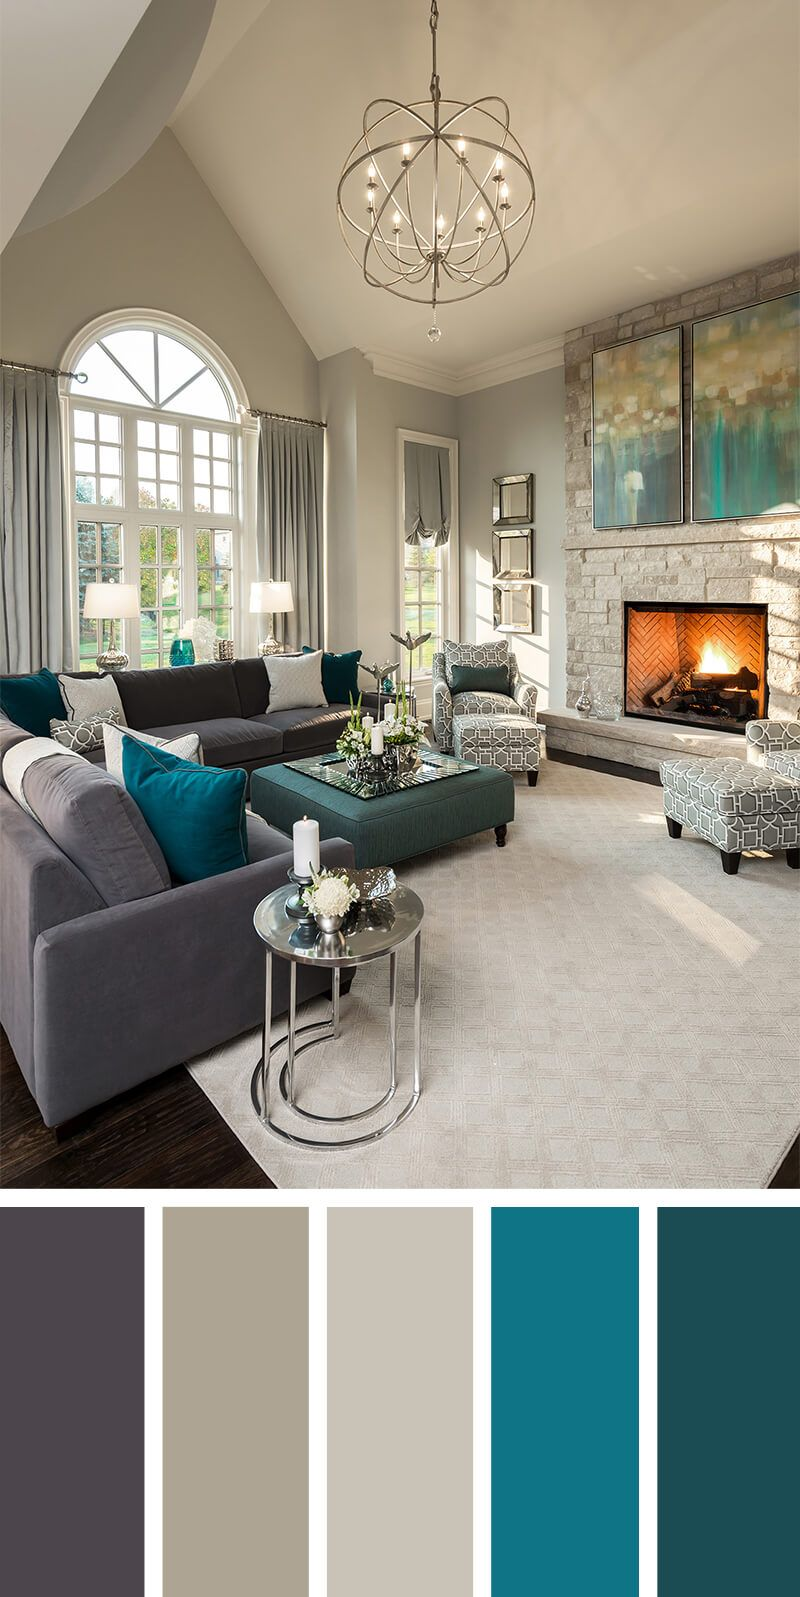 living room color design. Sofa Caf  Sillones Real Pared Gris Claro Acentos Blancos Plateados 7 Living Room Color Schemes That Will Make Your Space Look